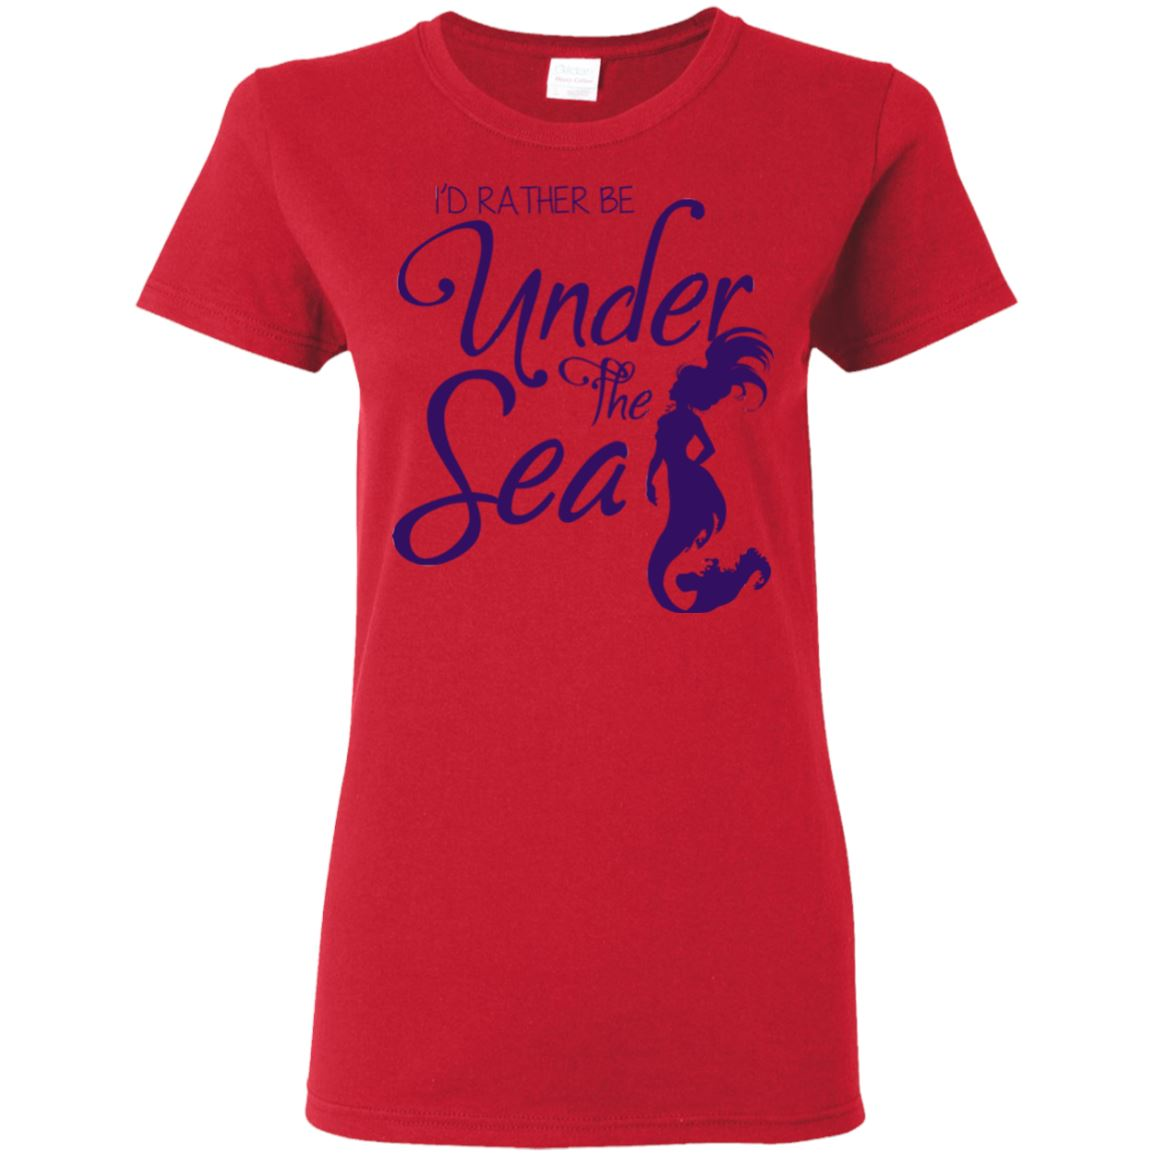 I'd Rather Be Under The Sea Ladies T-Shirt Mermaid Apparel Red S